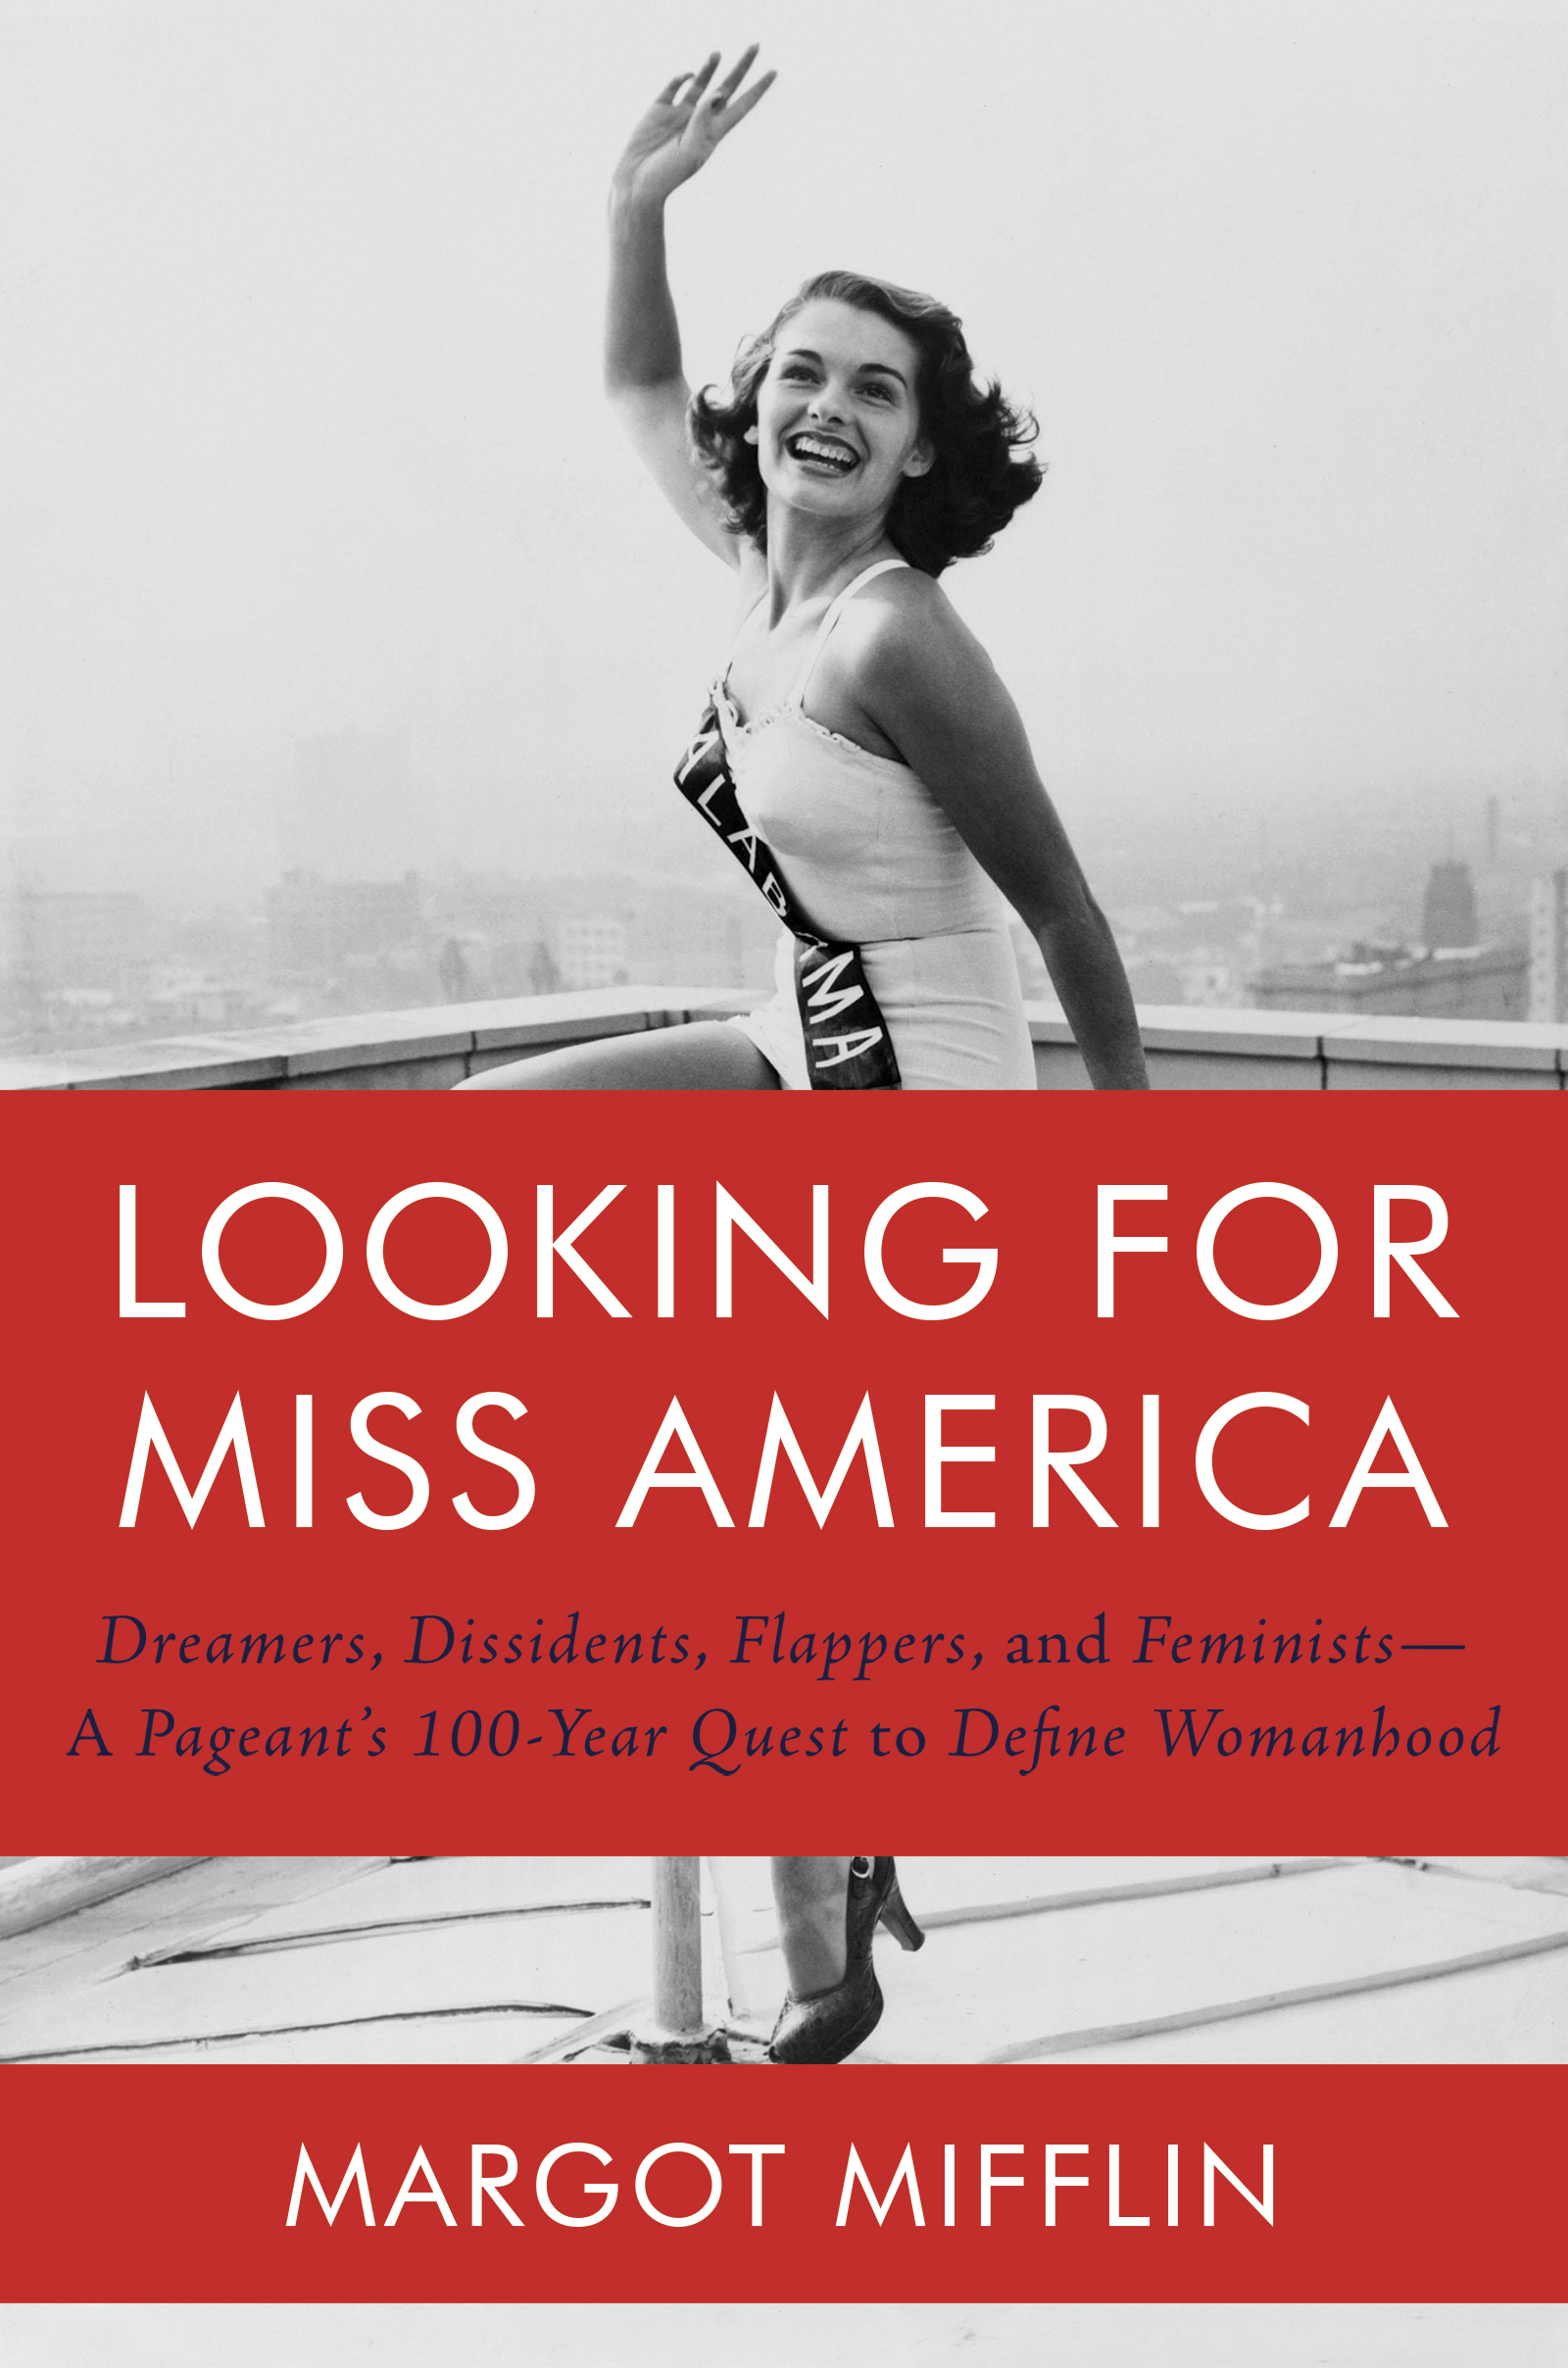 Book Launch: Looking for Miss America by Margot Mifflin